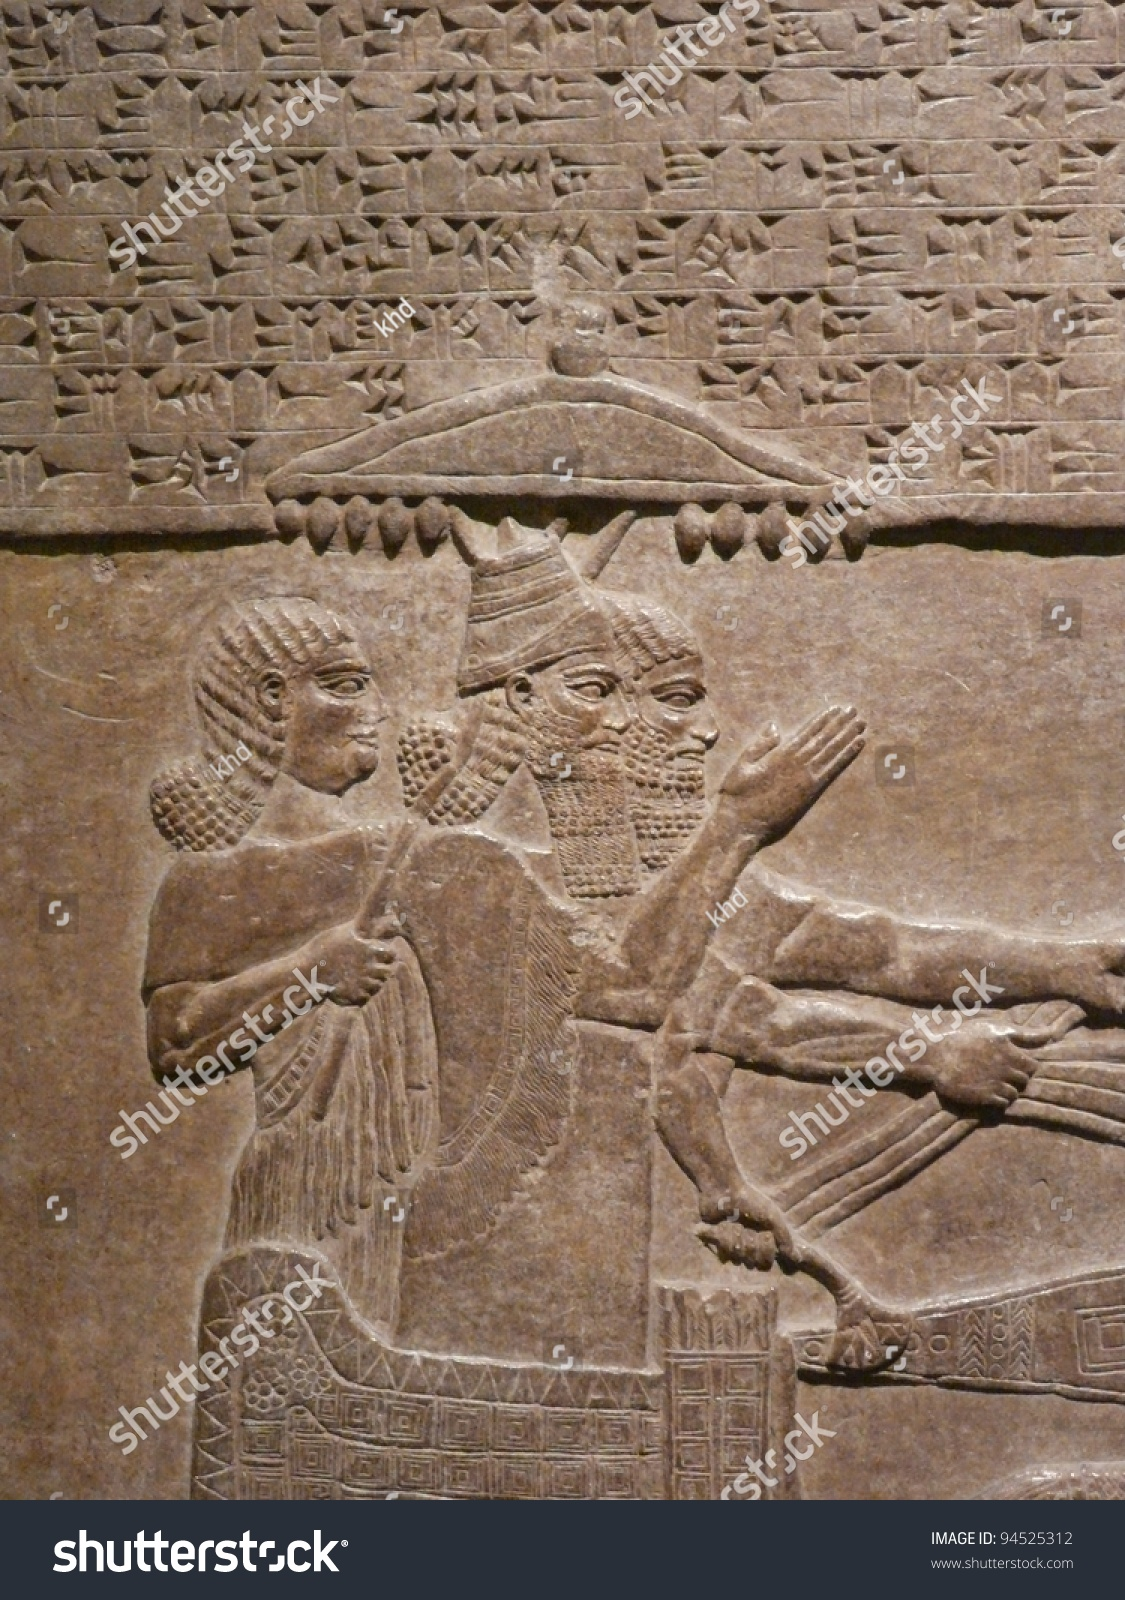 Ancient assyrian wall carvings of men and cuneiform